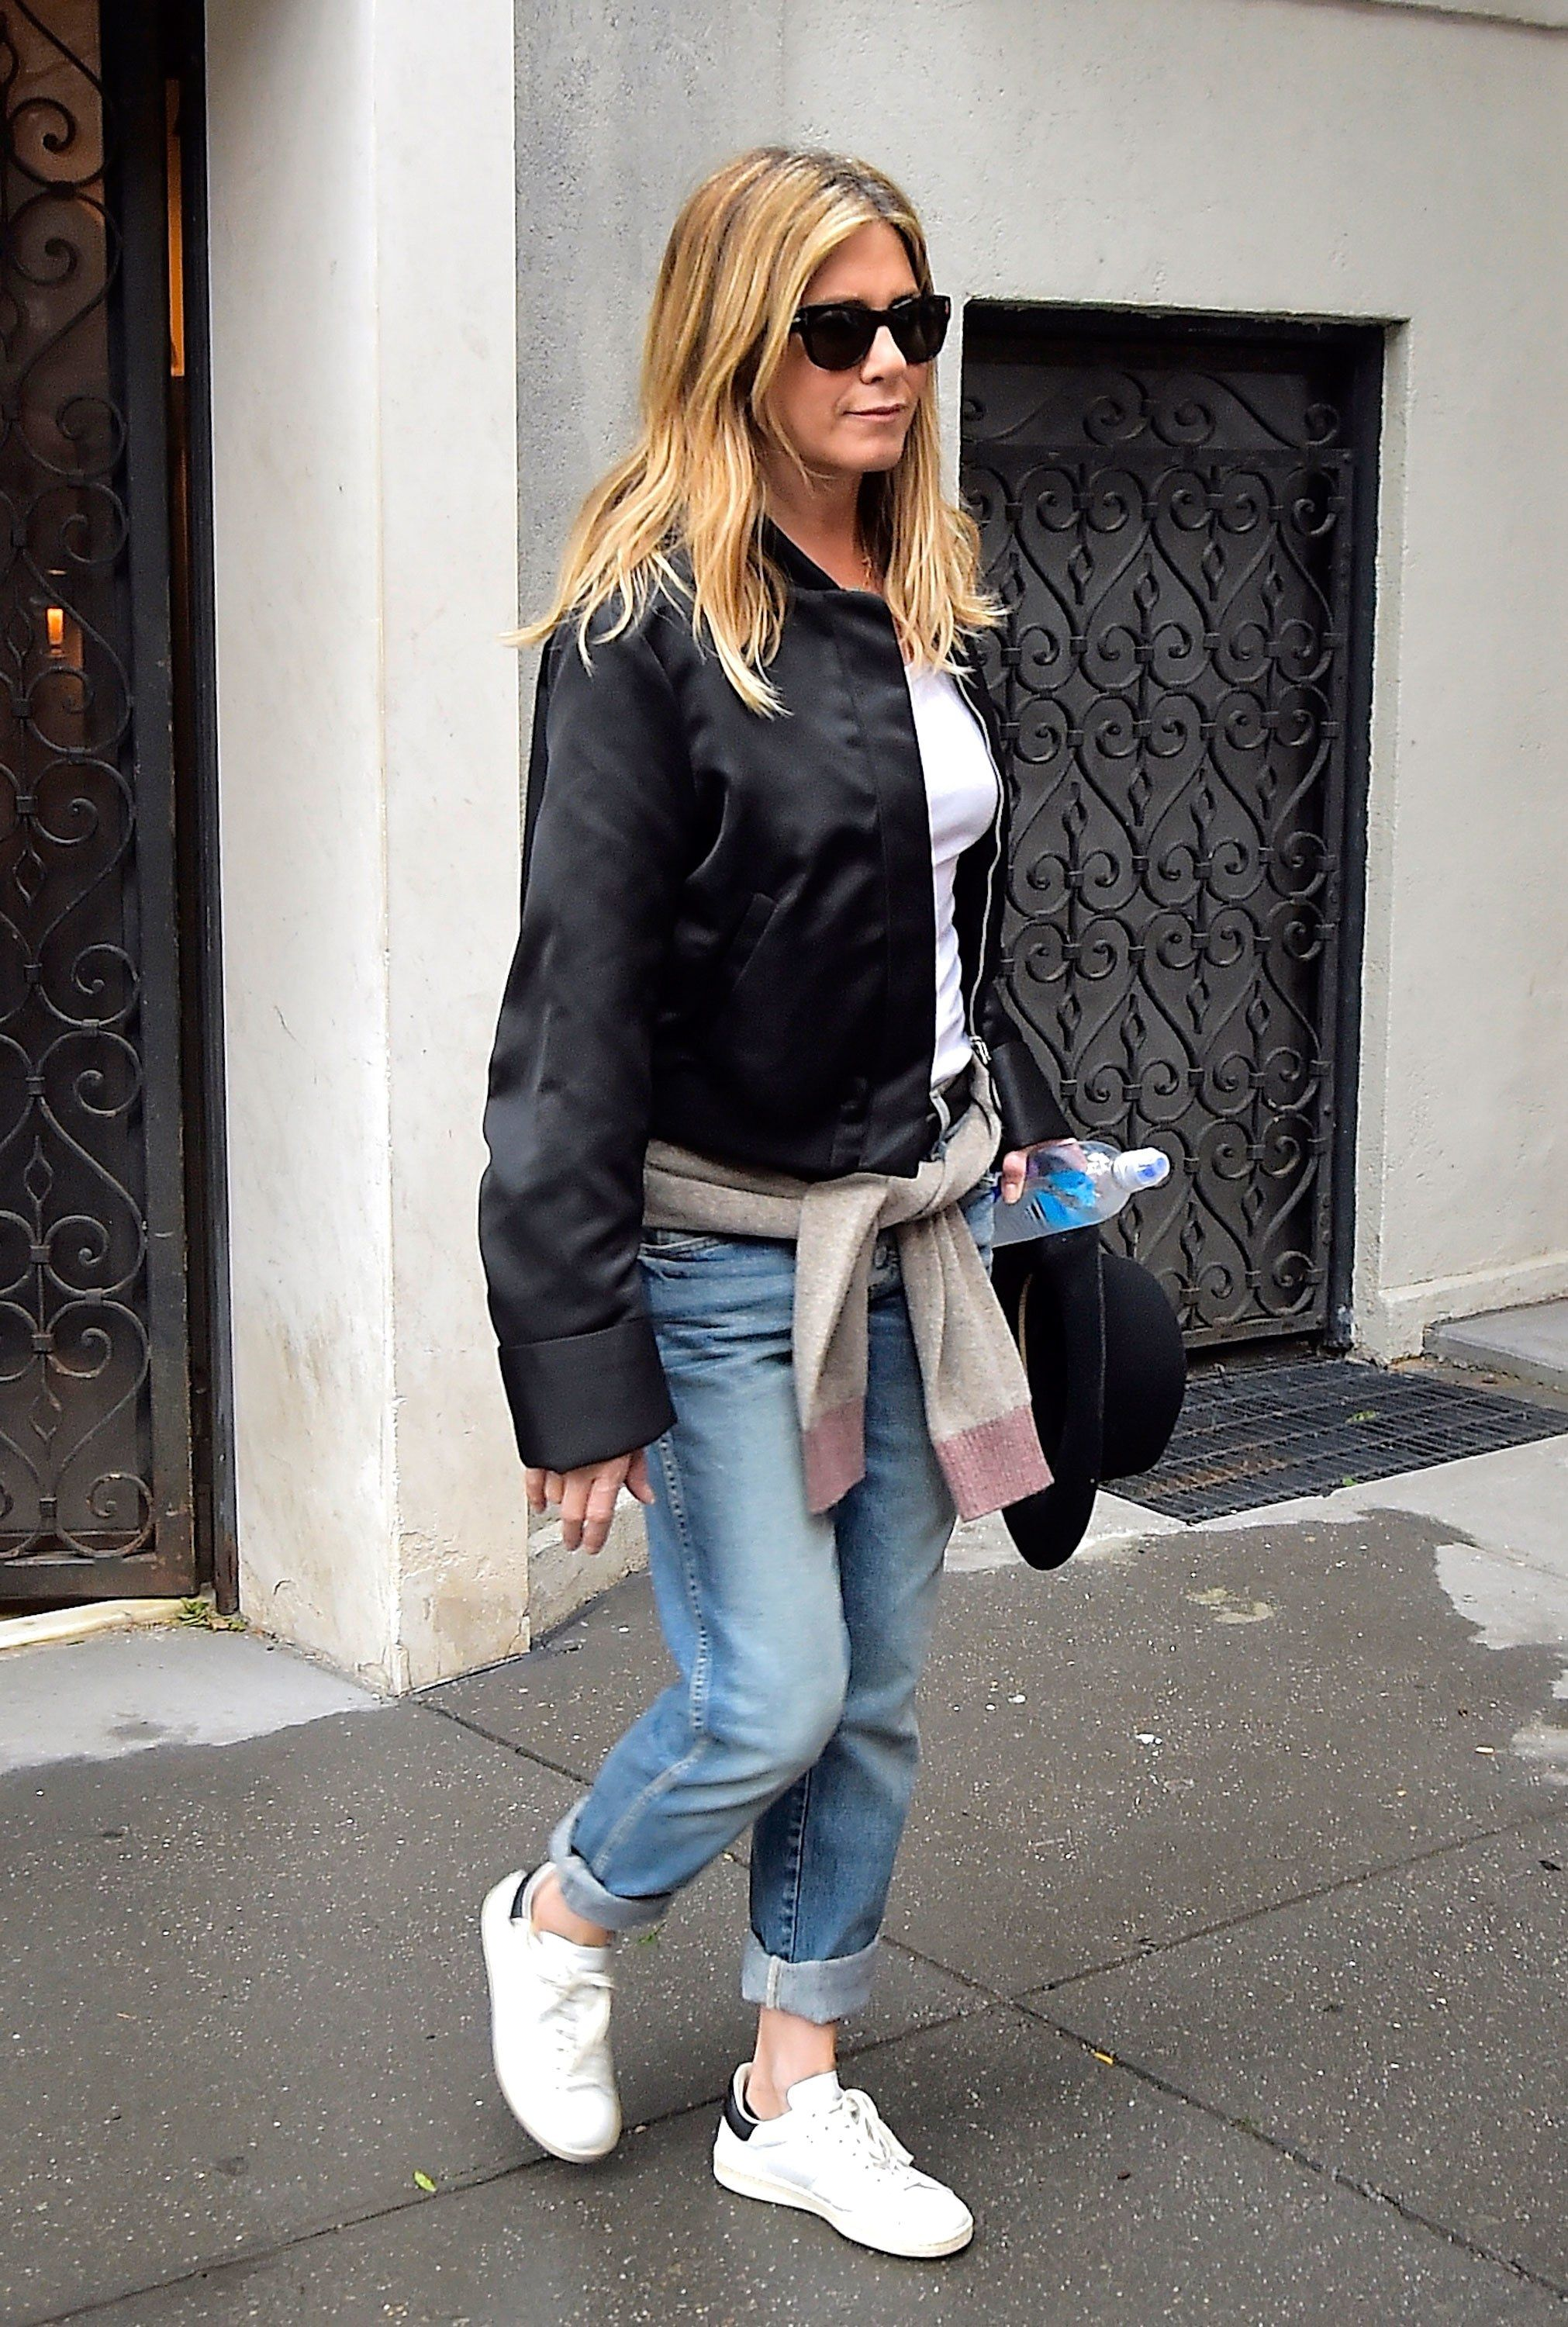 Image Result For Jennifer Aniston Style 2017 Styles Spring Inspiration Pinterest